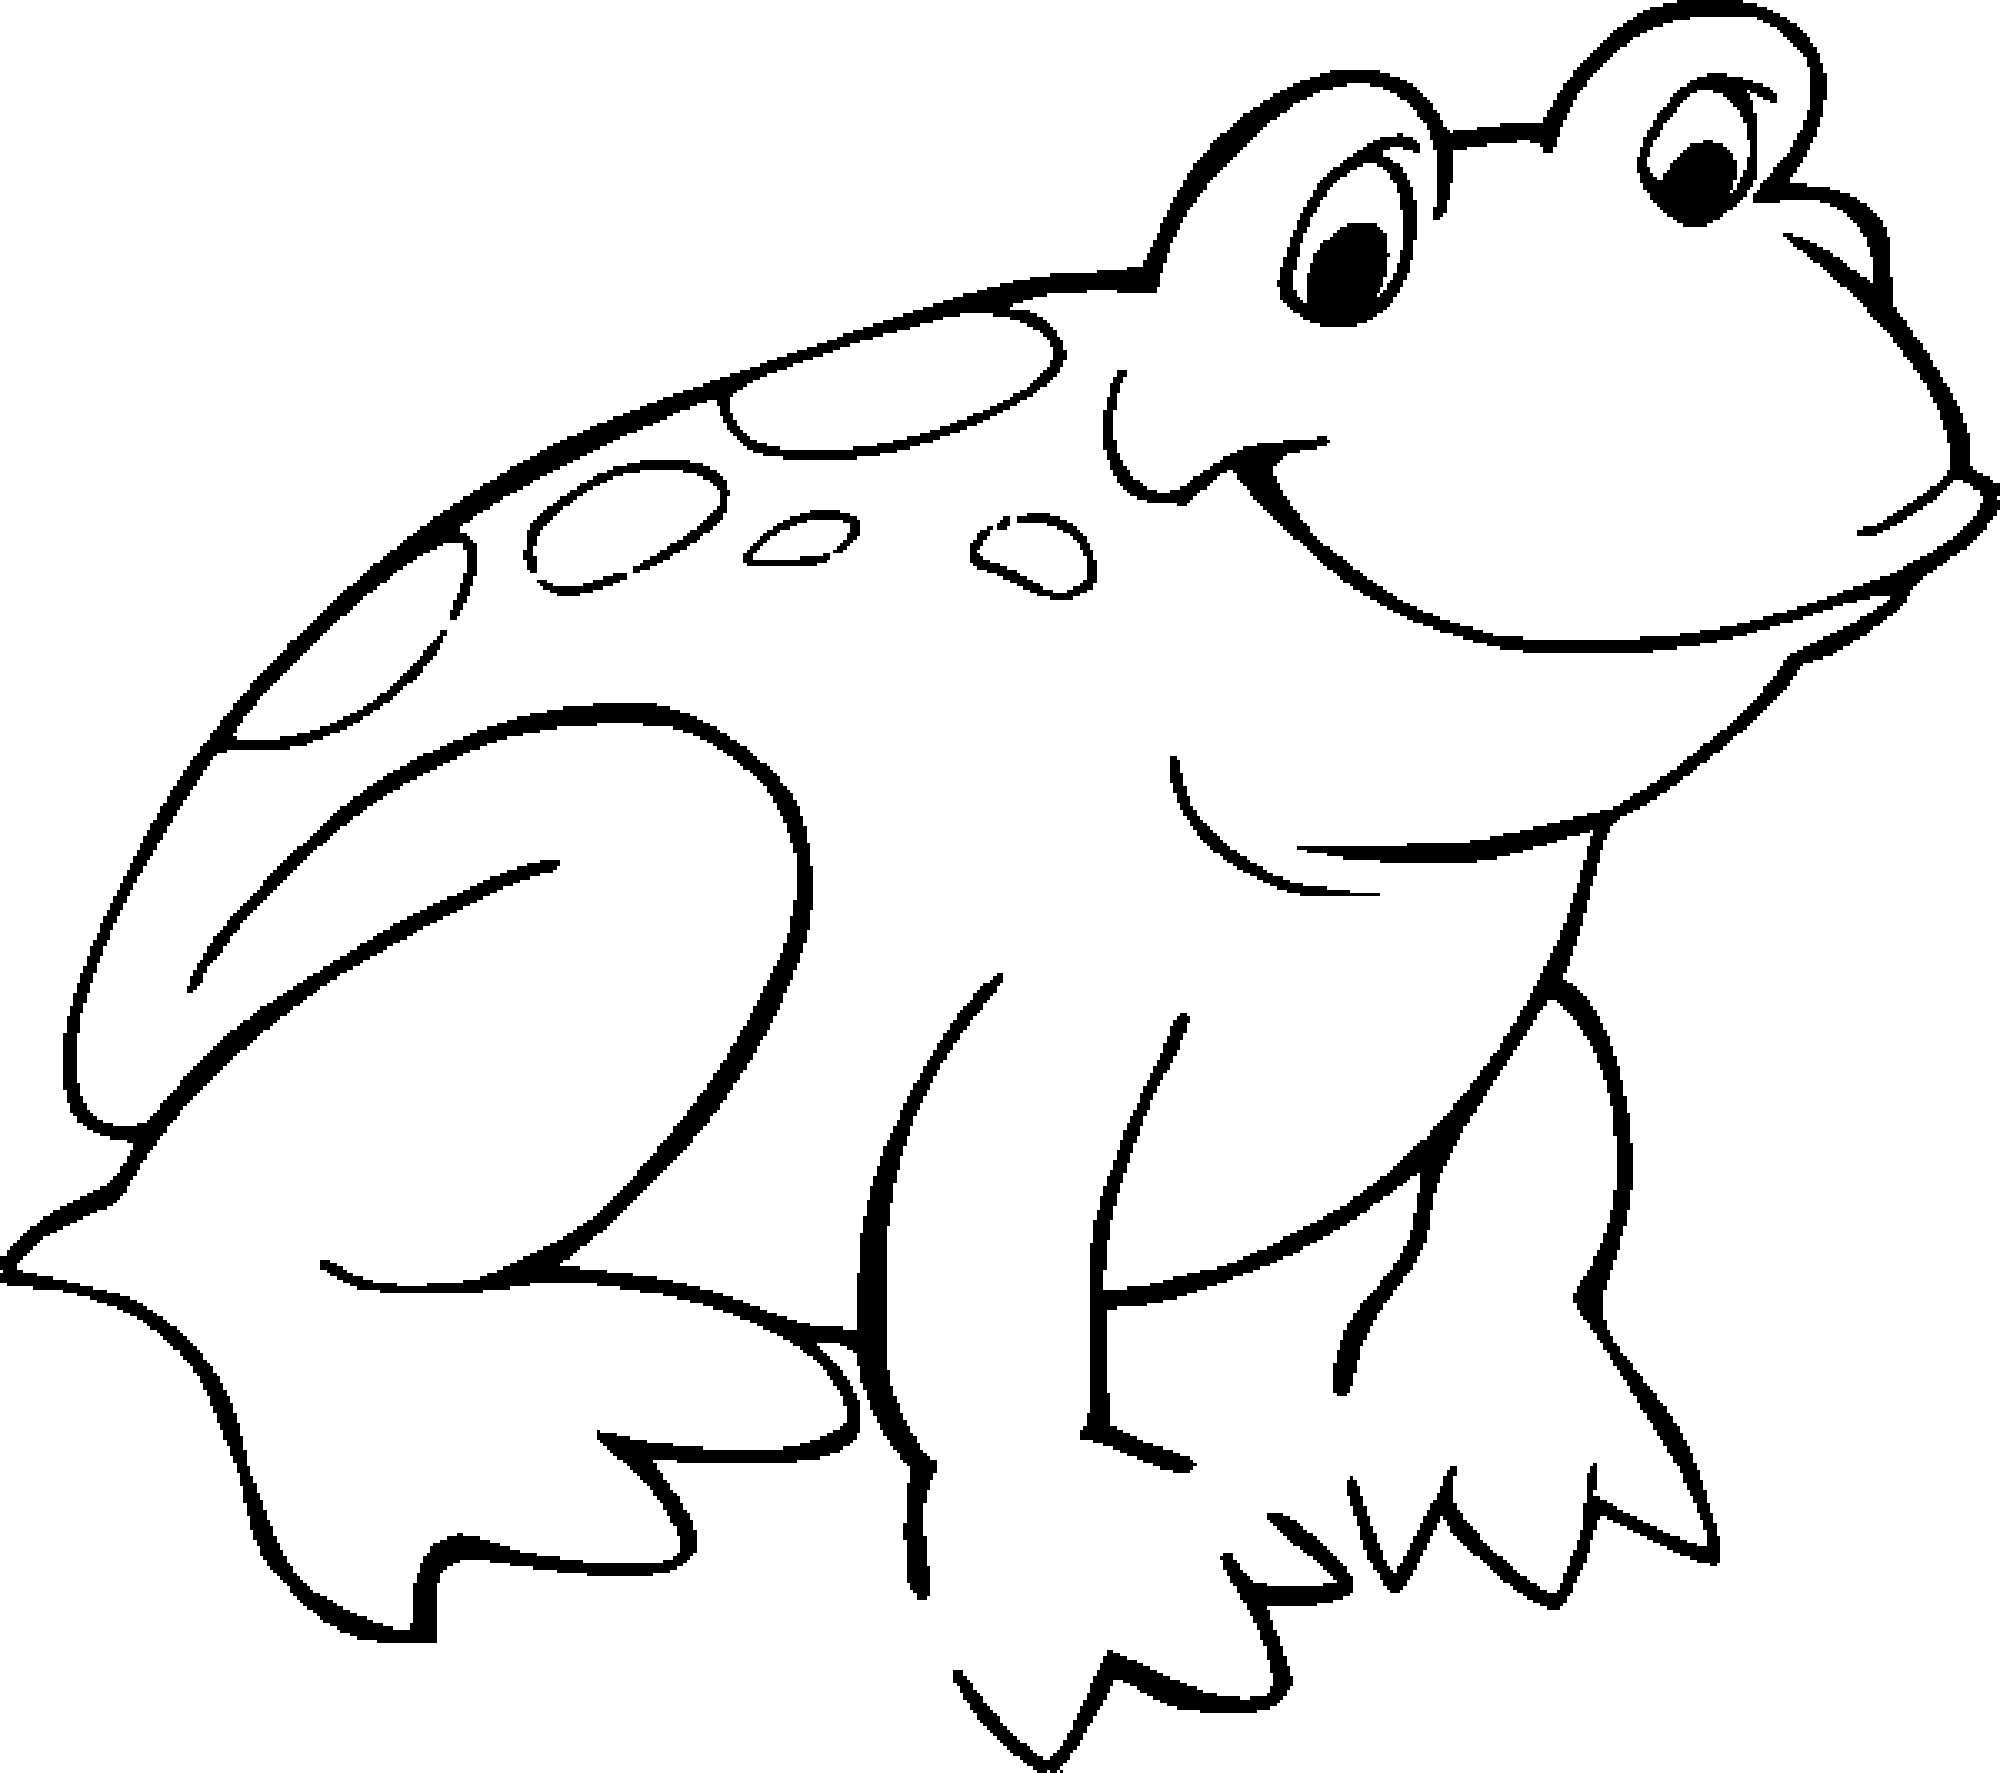 This is a graphic of Versatile Frog Drawing For Kids